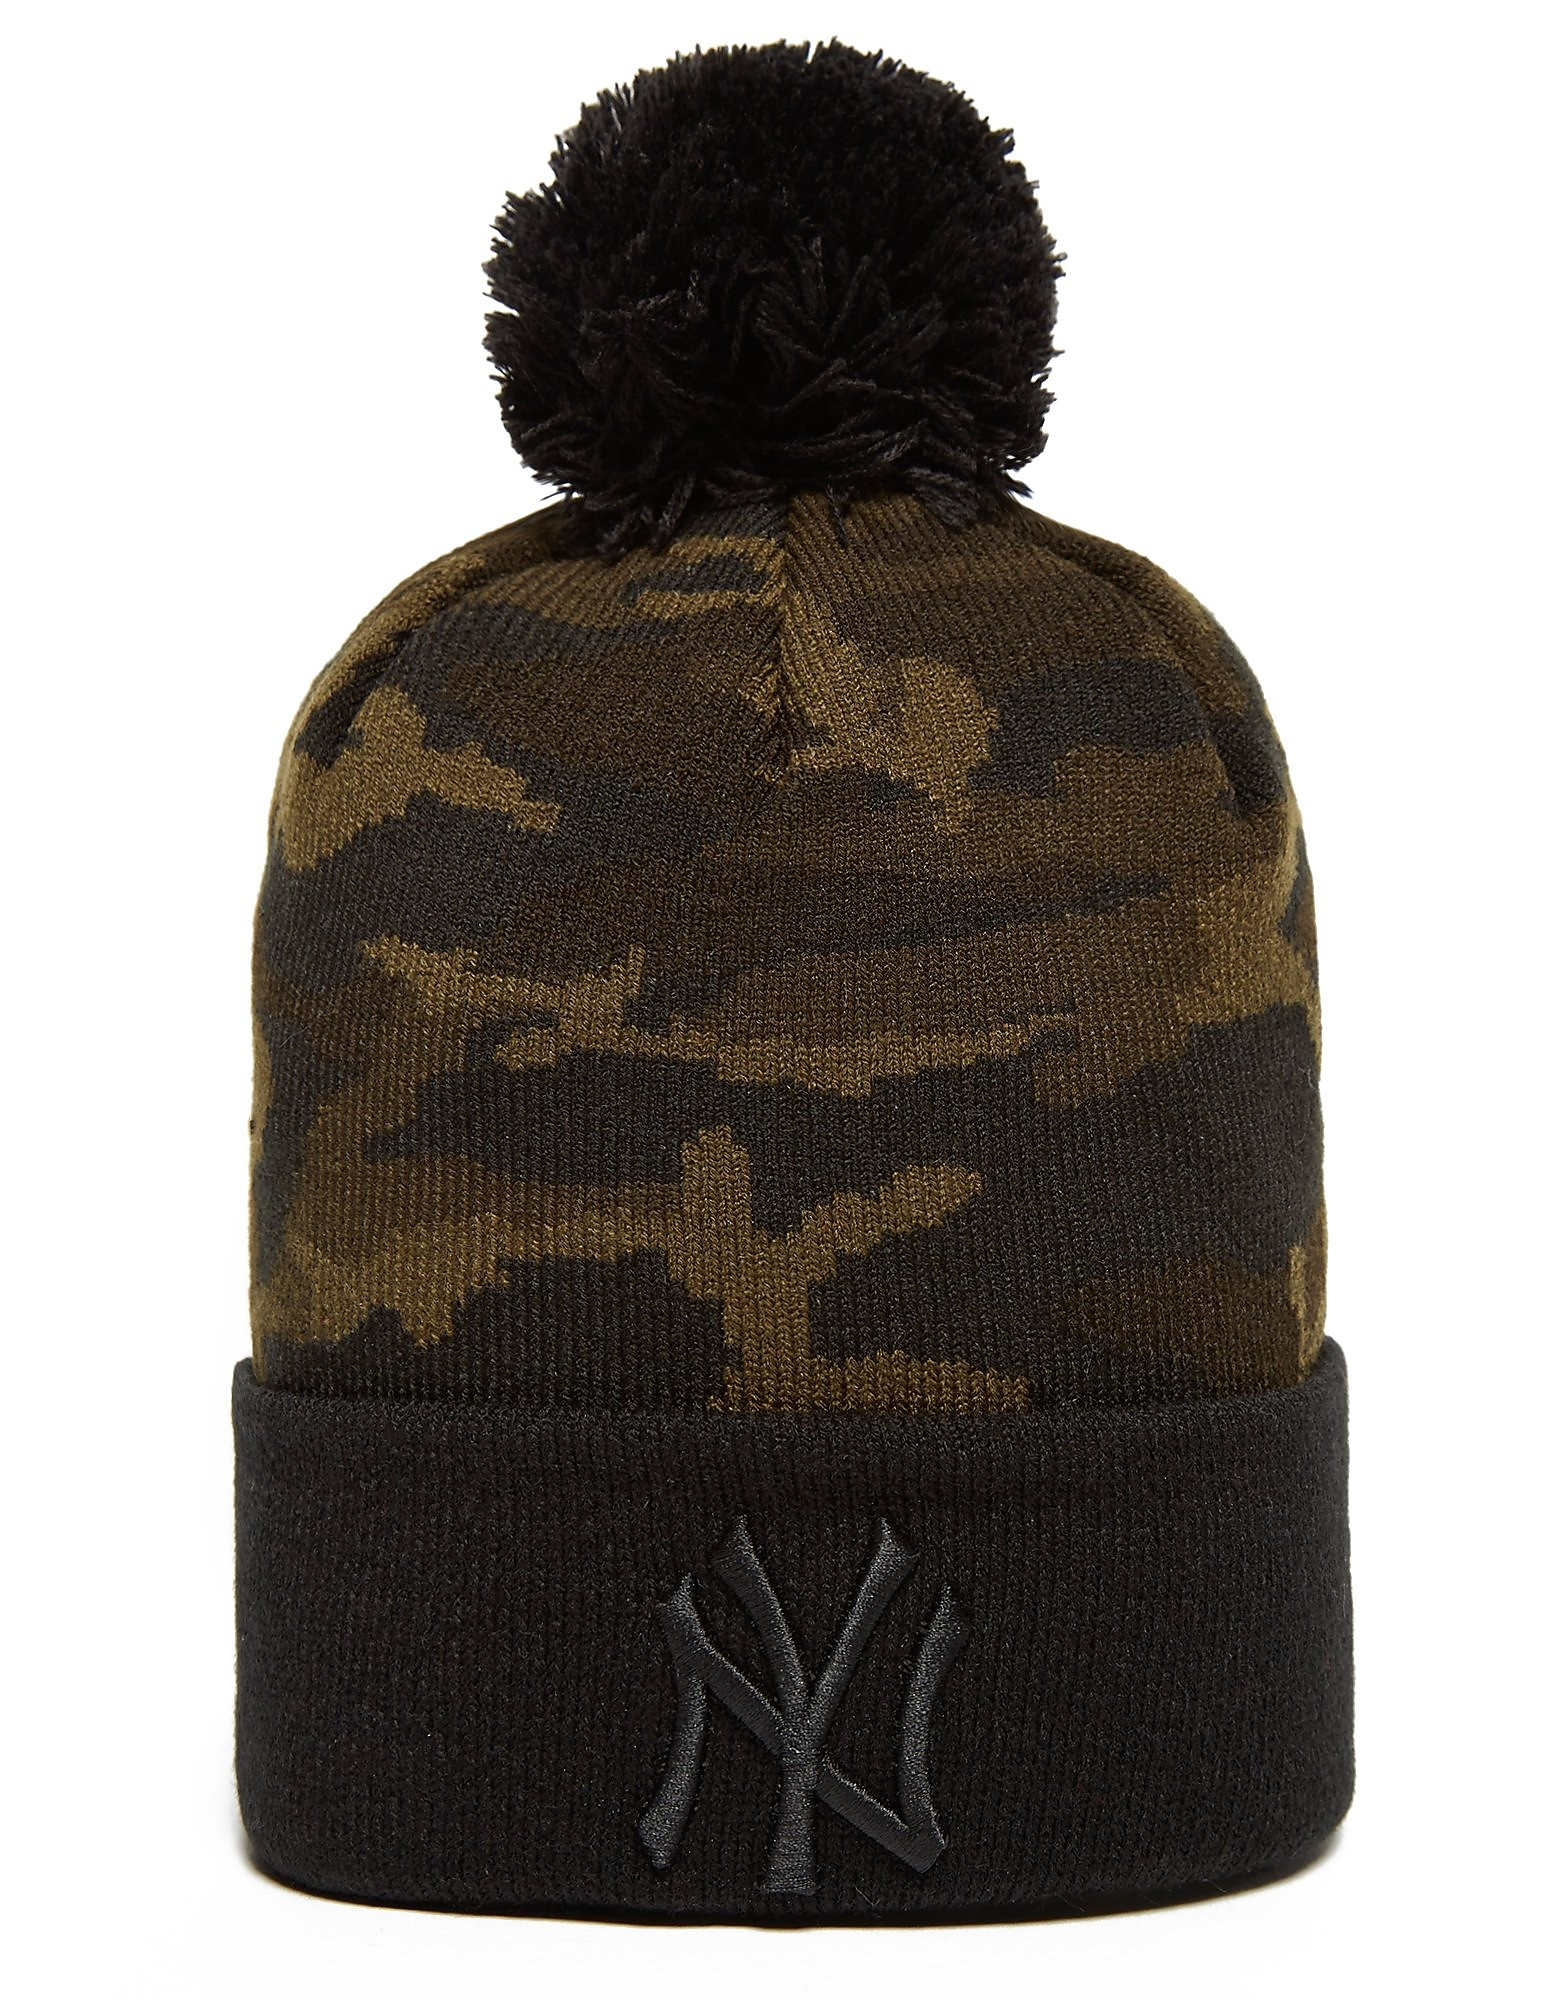 New Era MLB New York Yankees Camo Beanie Hat